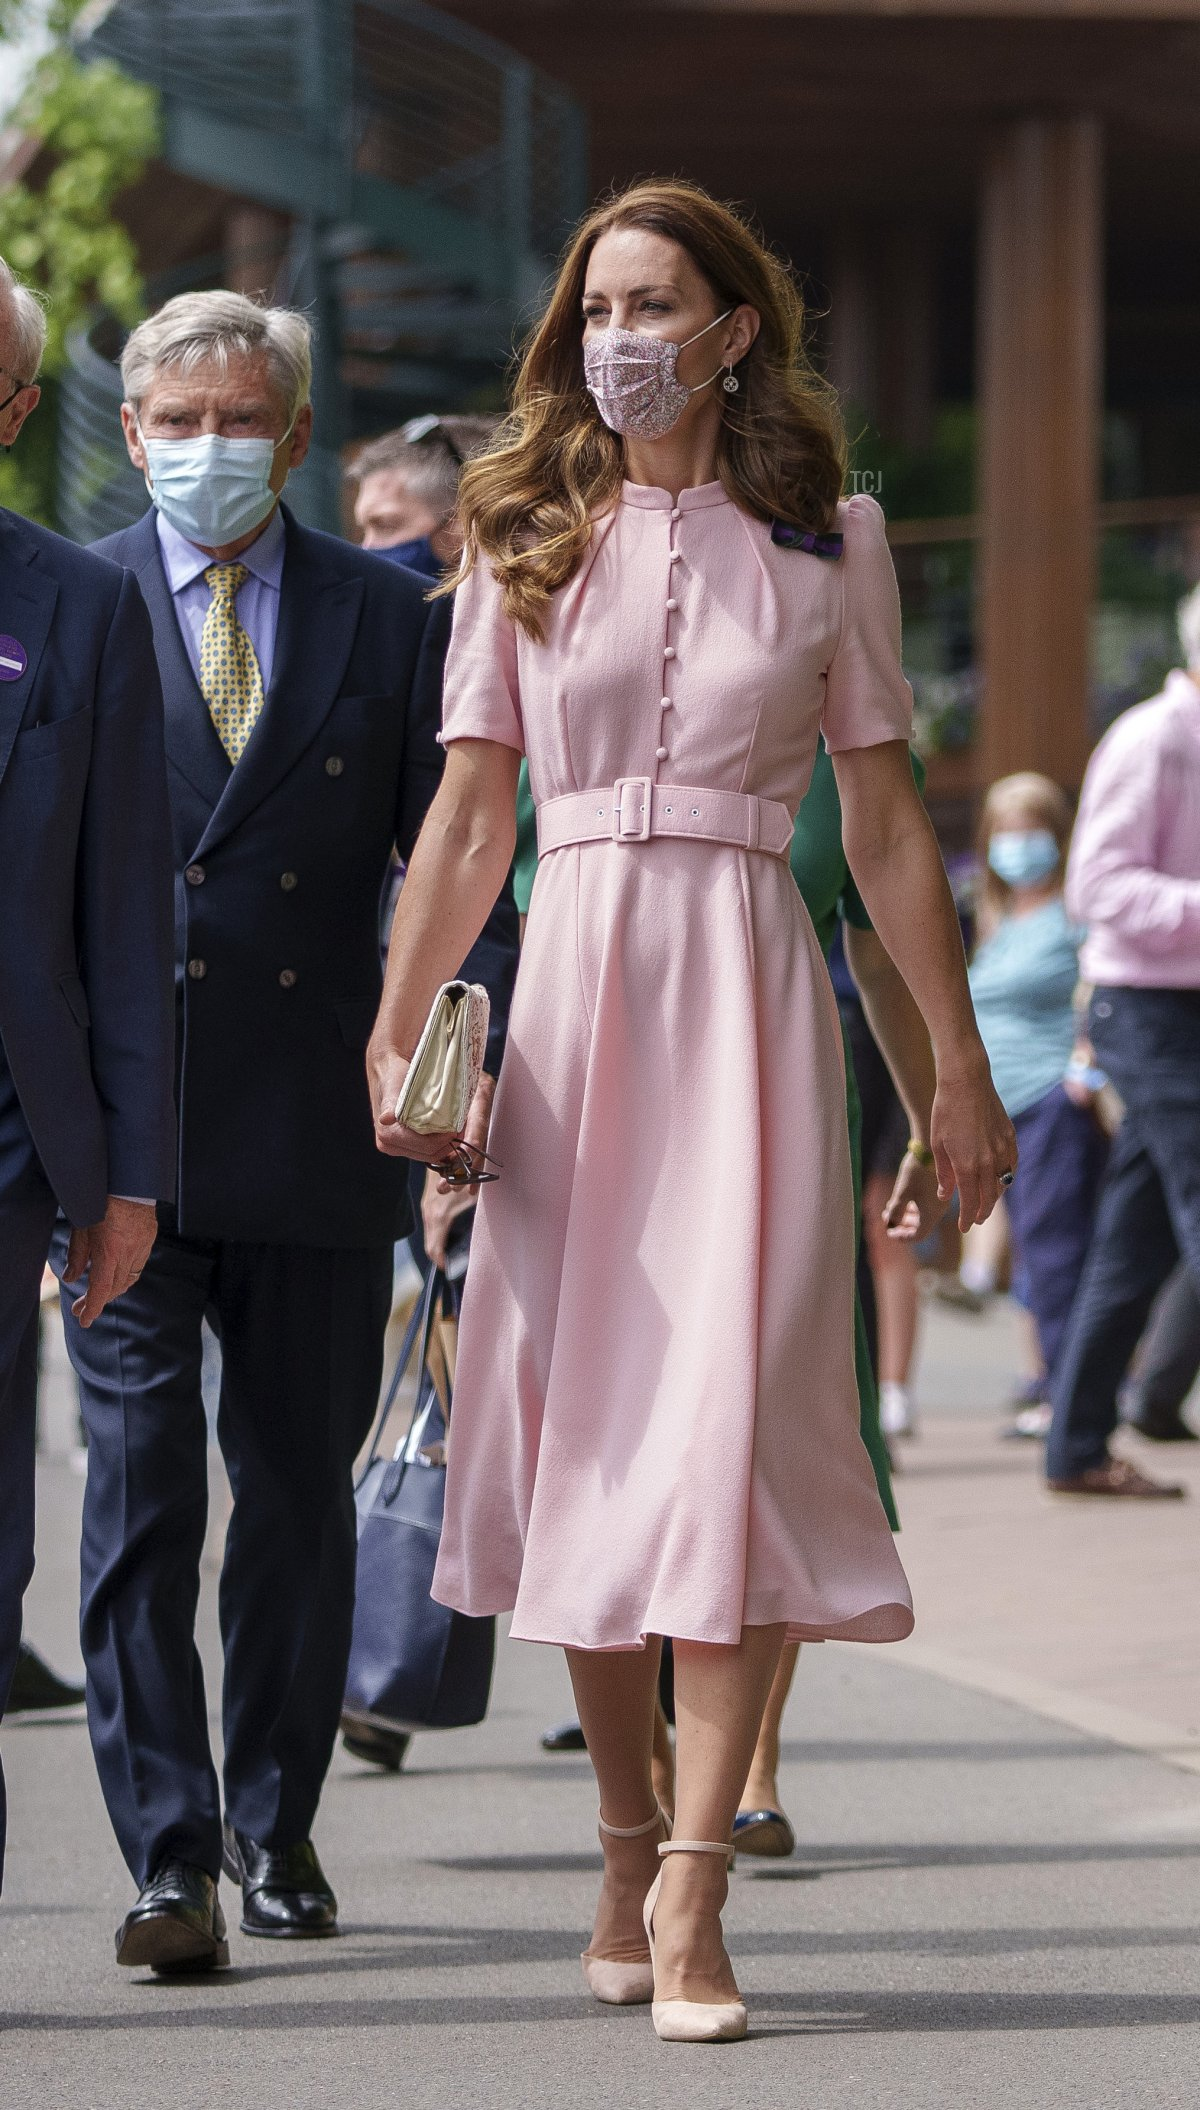 Catherine, Duchess of Cambridge Patron of the All England Lawn Tennis Club and her father Michael Middleton during Day Thirteen of The Championships - Wimbledon 2021 at All England Lawn Tennis and Croquet Club on July 11, 2021 in London, England